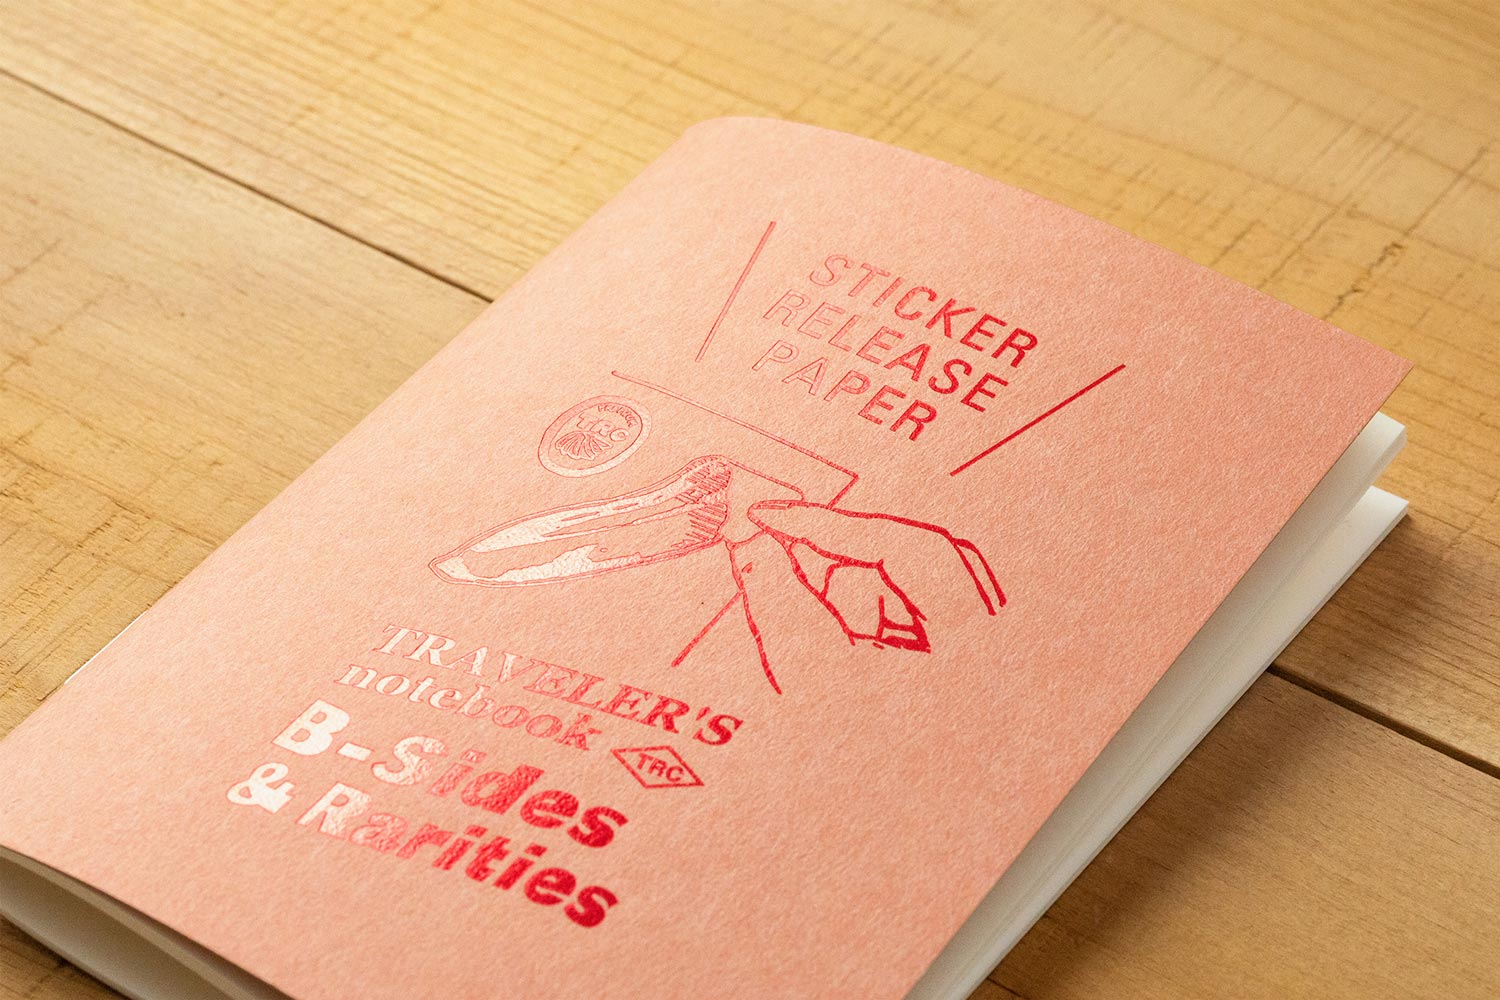 TRAVELER'S B-Sides & Rarities PASSPORT Sticker Release Paper Notebook